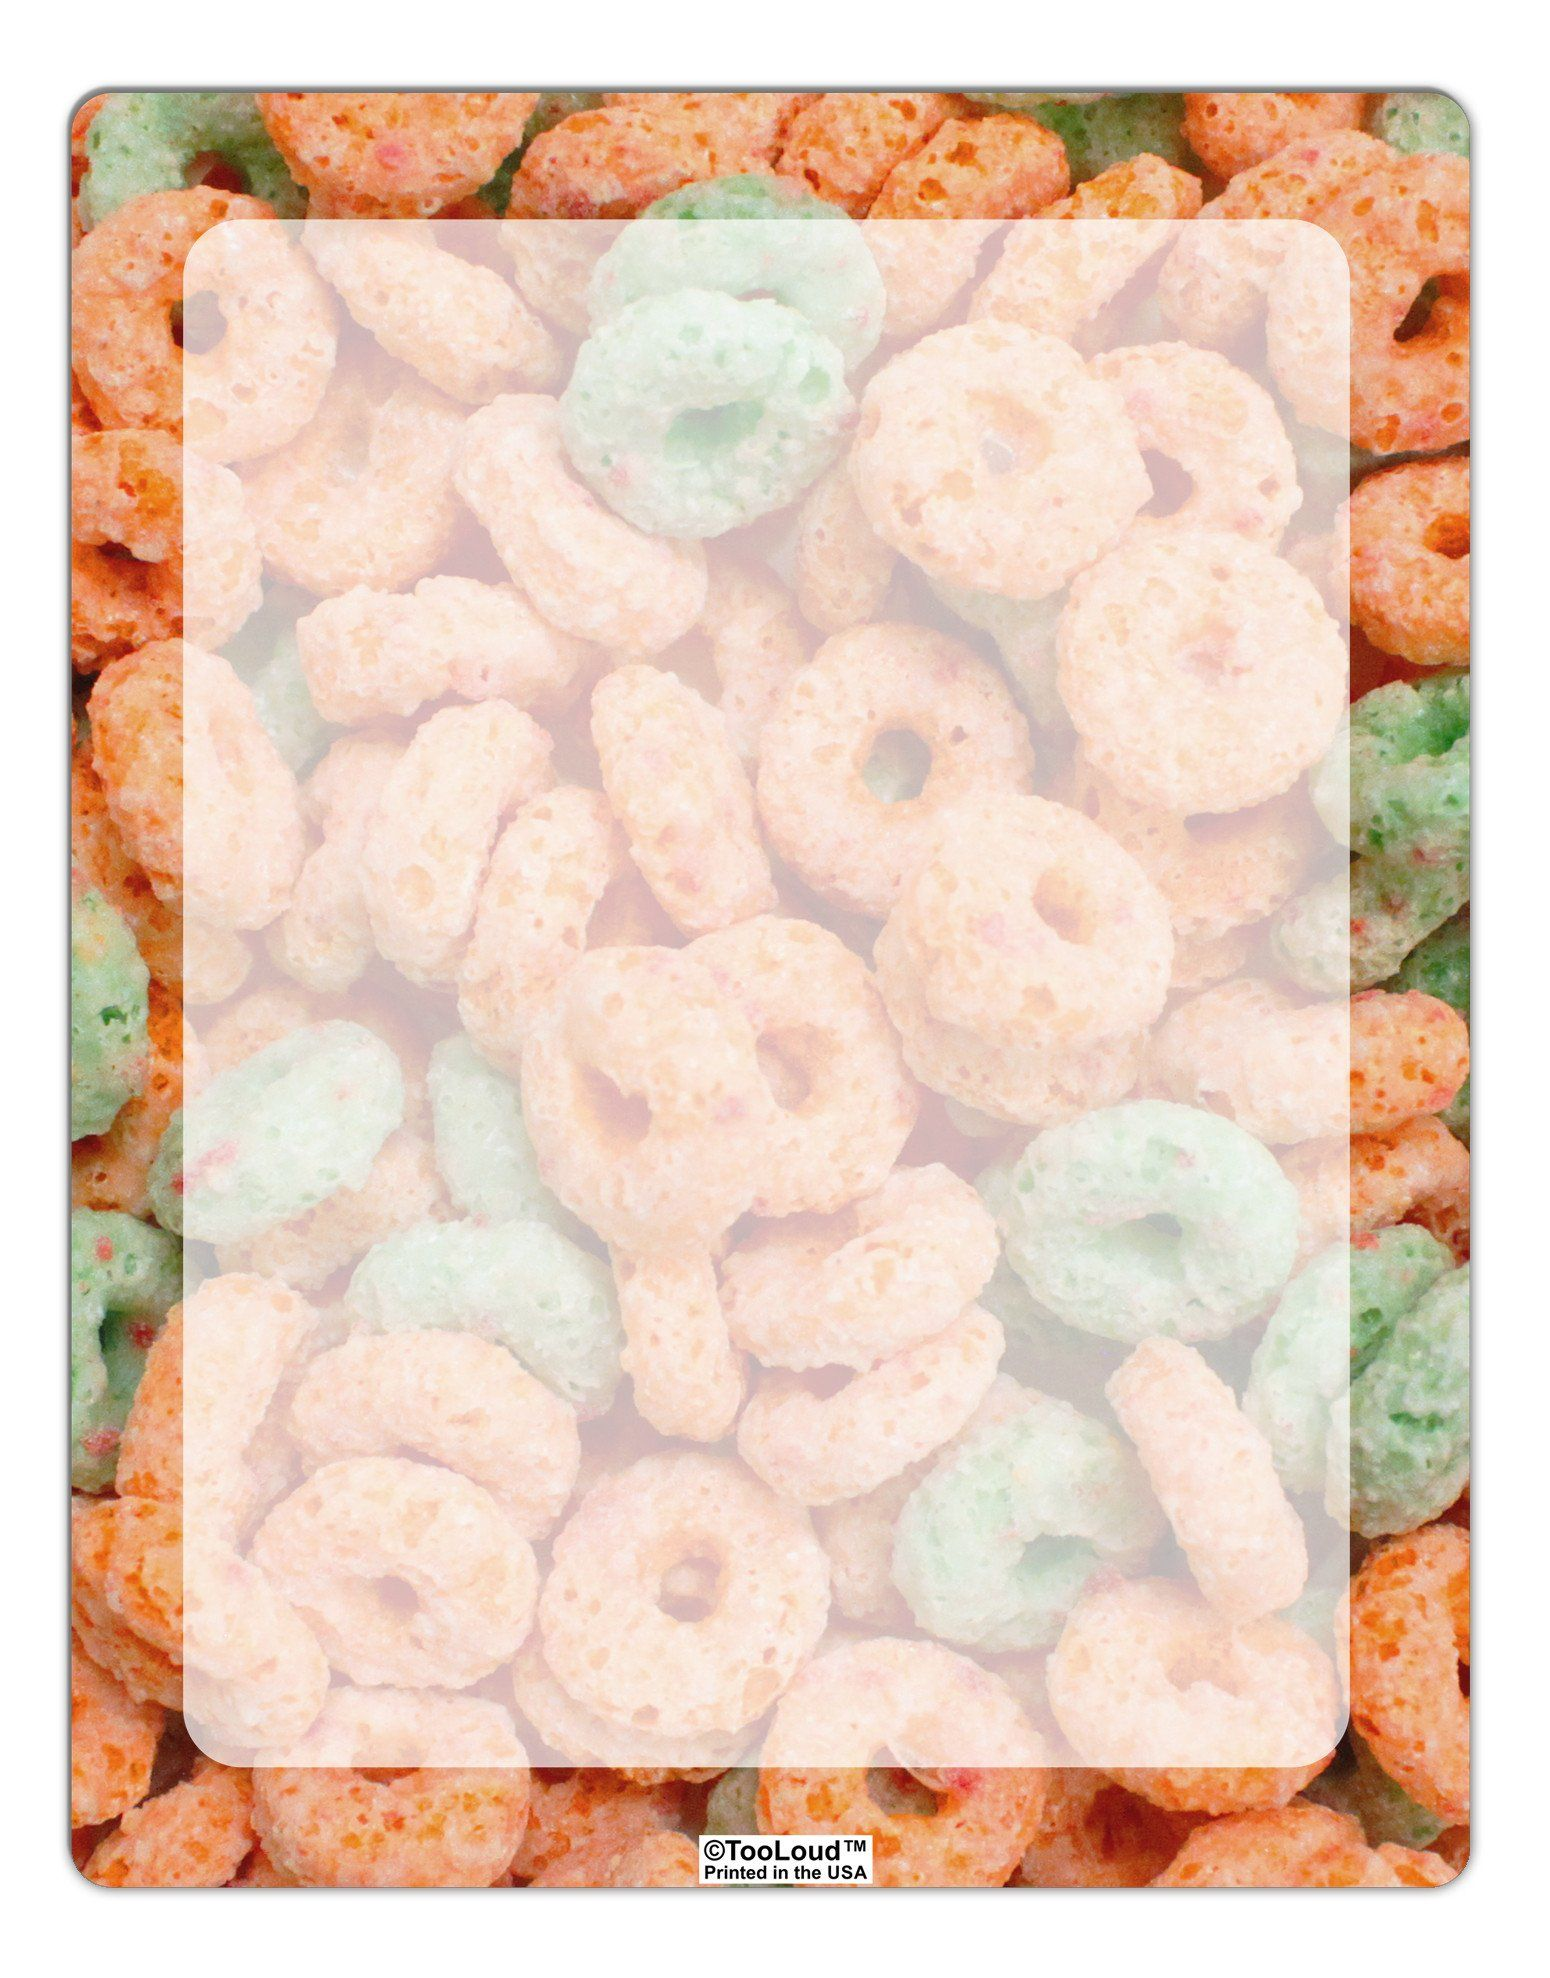 Orange and Green Cereal All Over Aluminum Dry Erase Board All Over Print